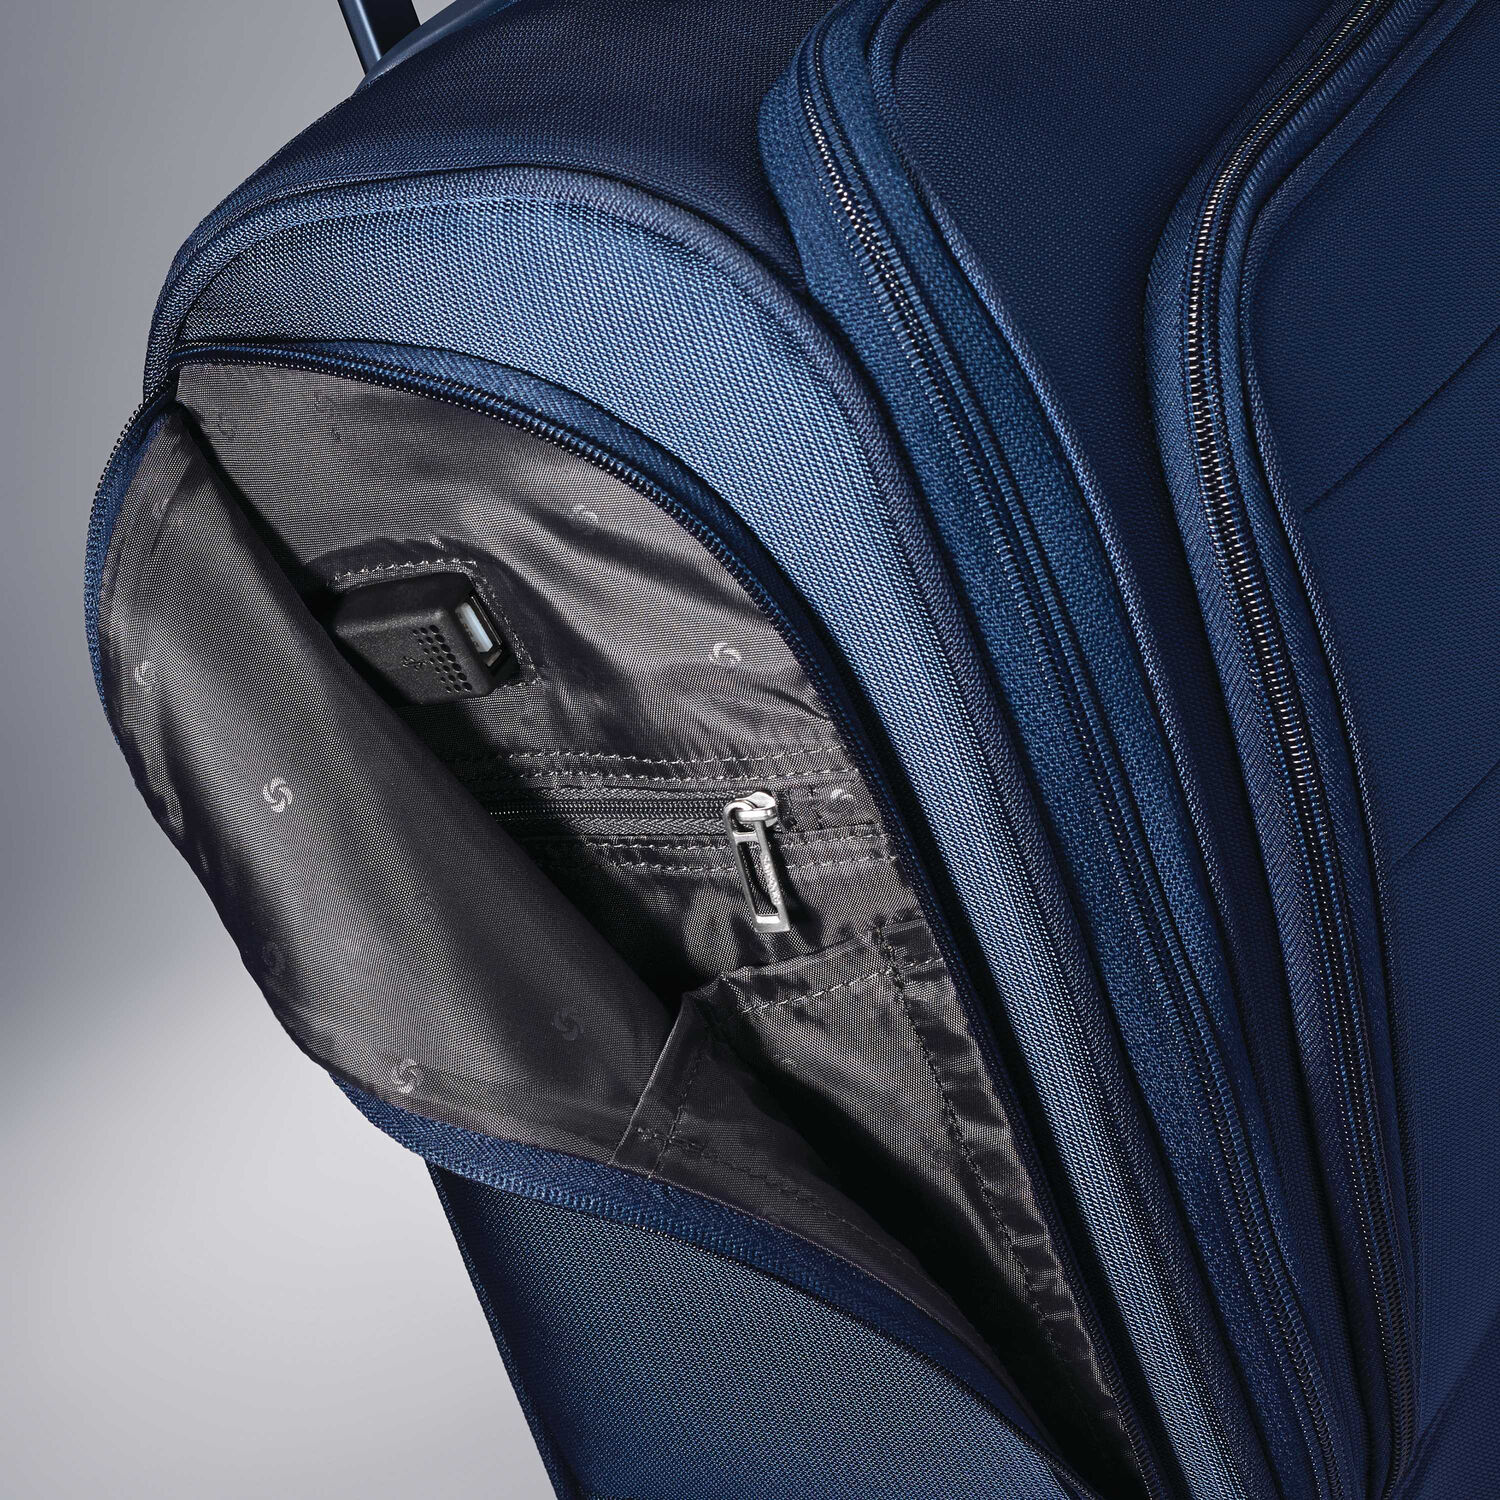 ac8ad9248a591 Samsonite Flexis Underseater Carry-On Spinner in the color Carbon Blue.